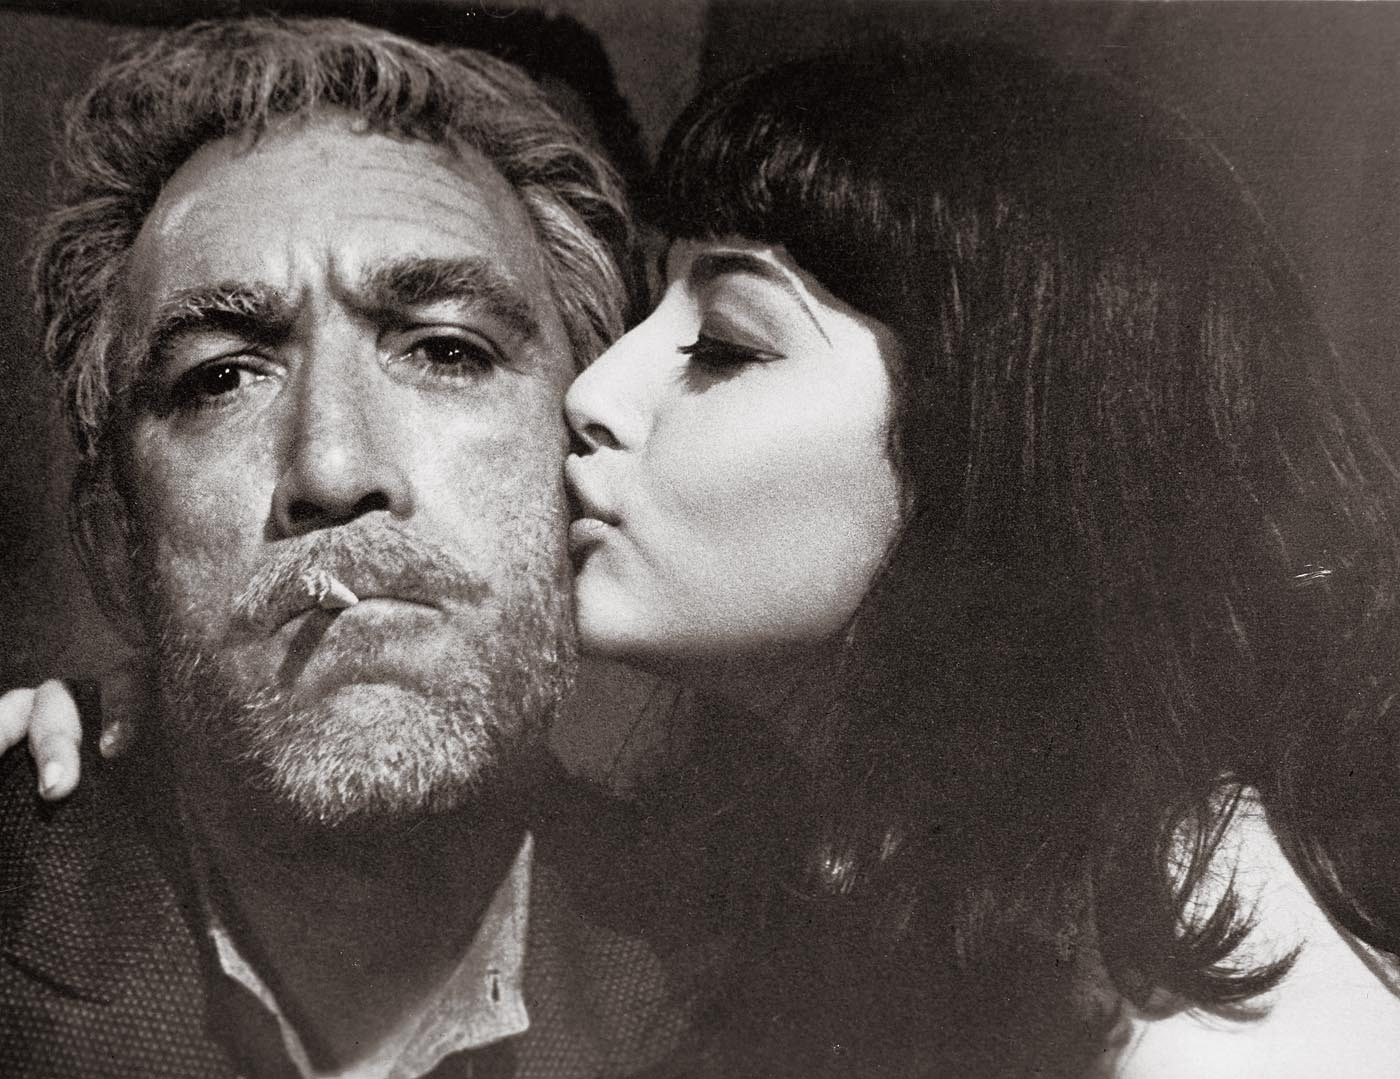 From 'Viva Zapata' to 'Zorba the Greek': 5 Movies Starring Anthony Quinn You Can Stream at Home